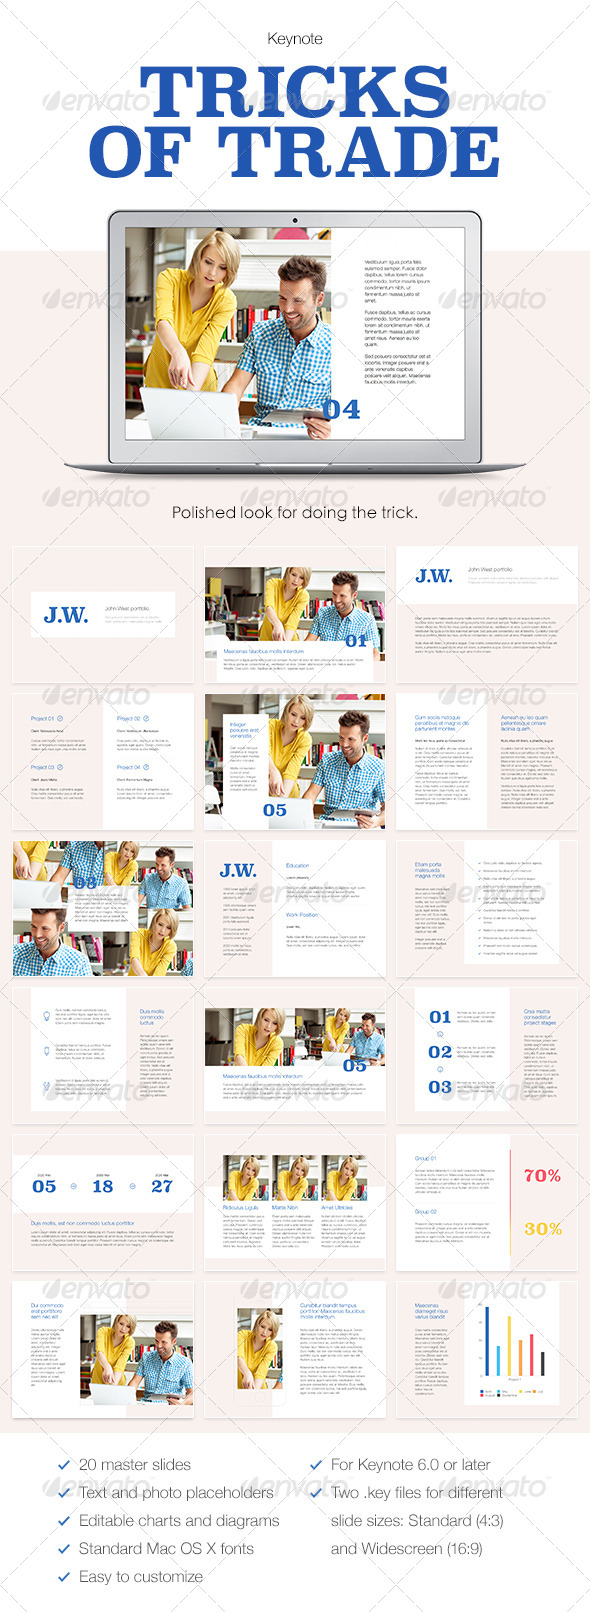 GraphicRiver Tricks of Trade Keynote Template 7160791